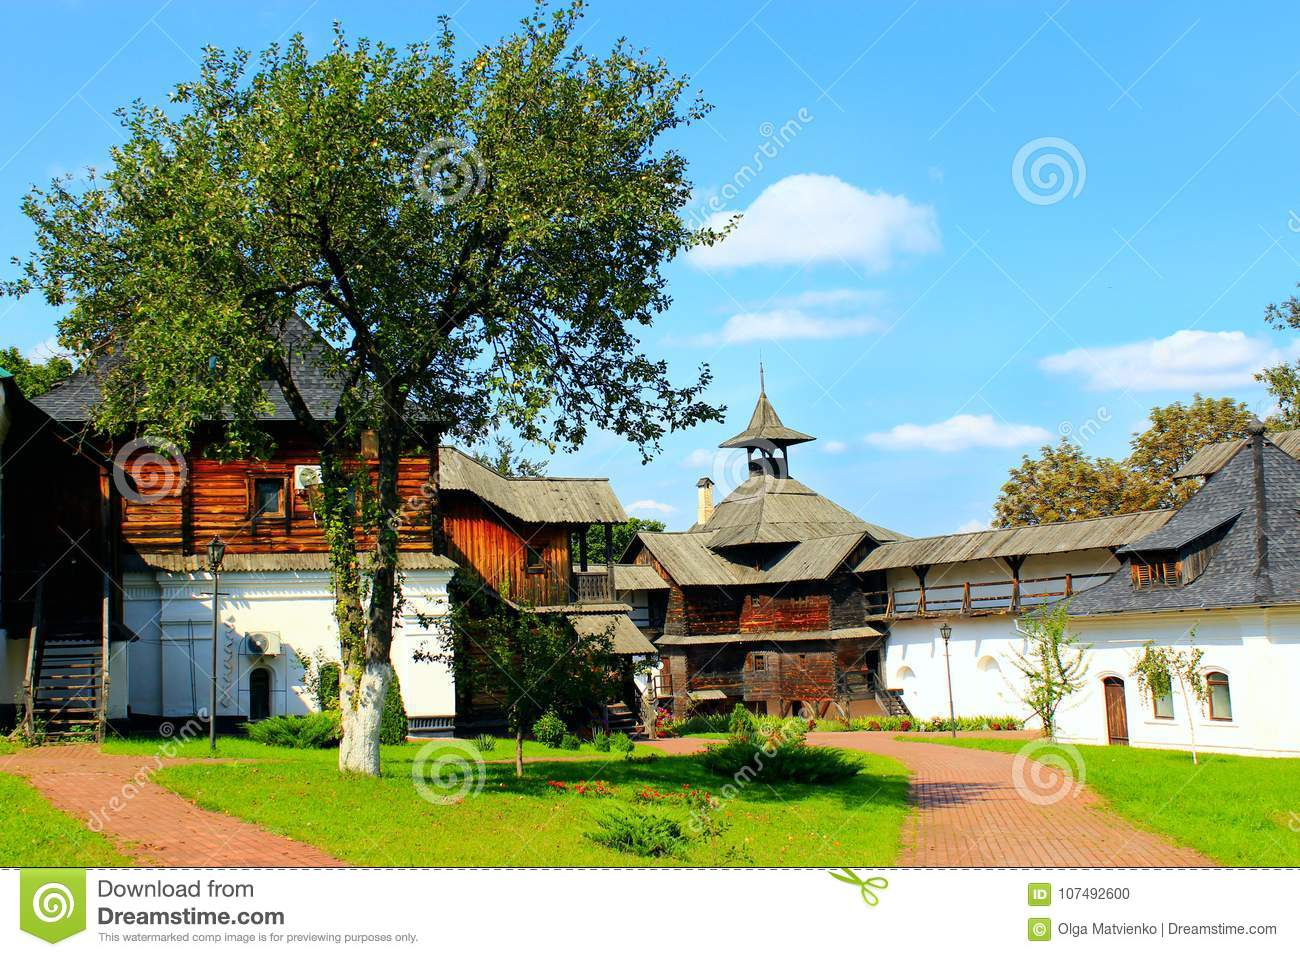 Ancient Slavonic fortress in Novhorod-Siverskii